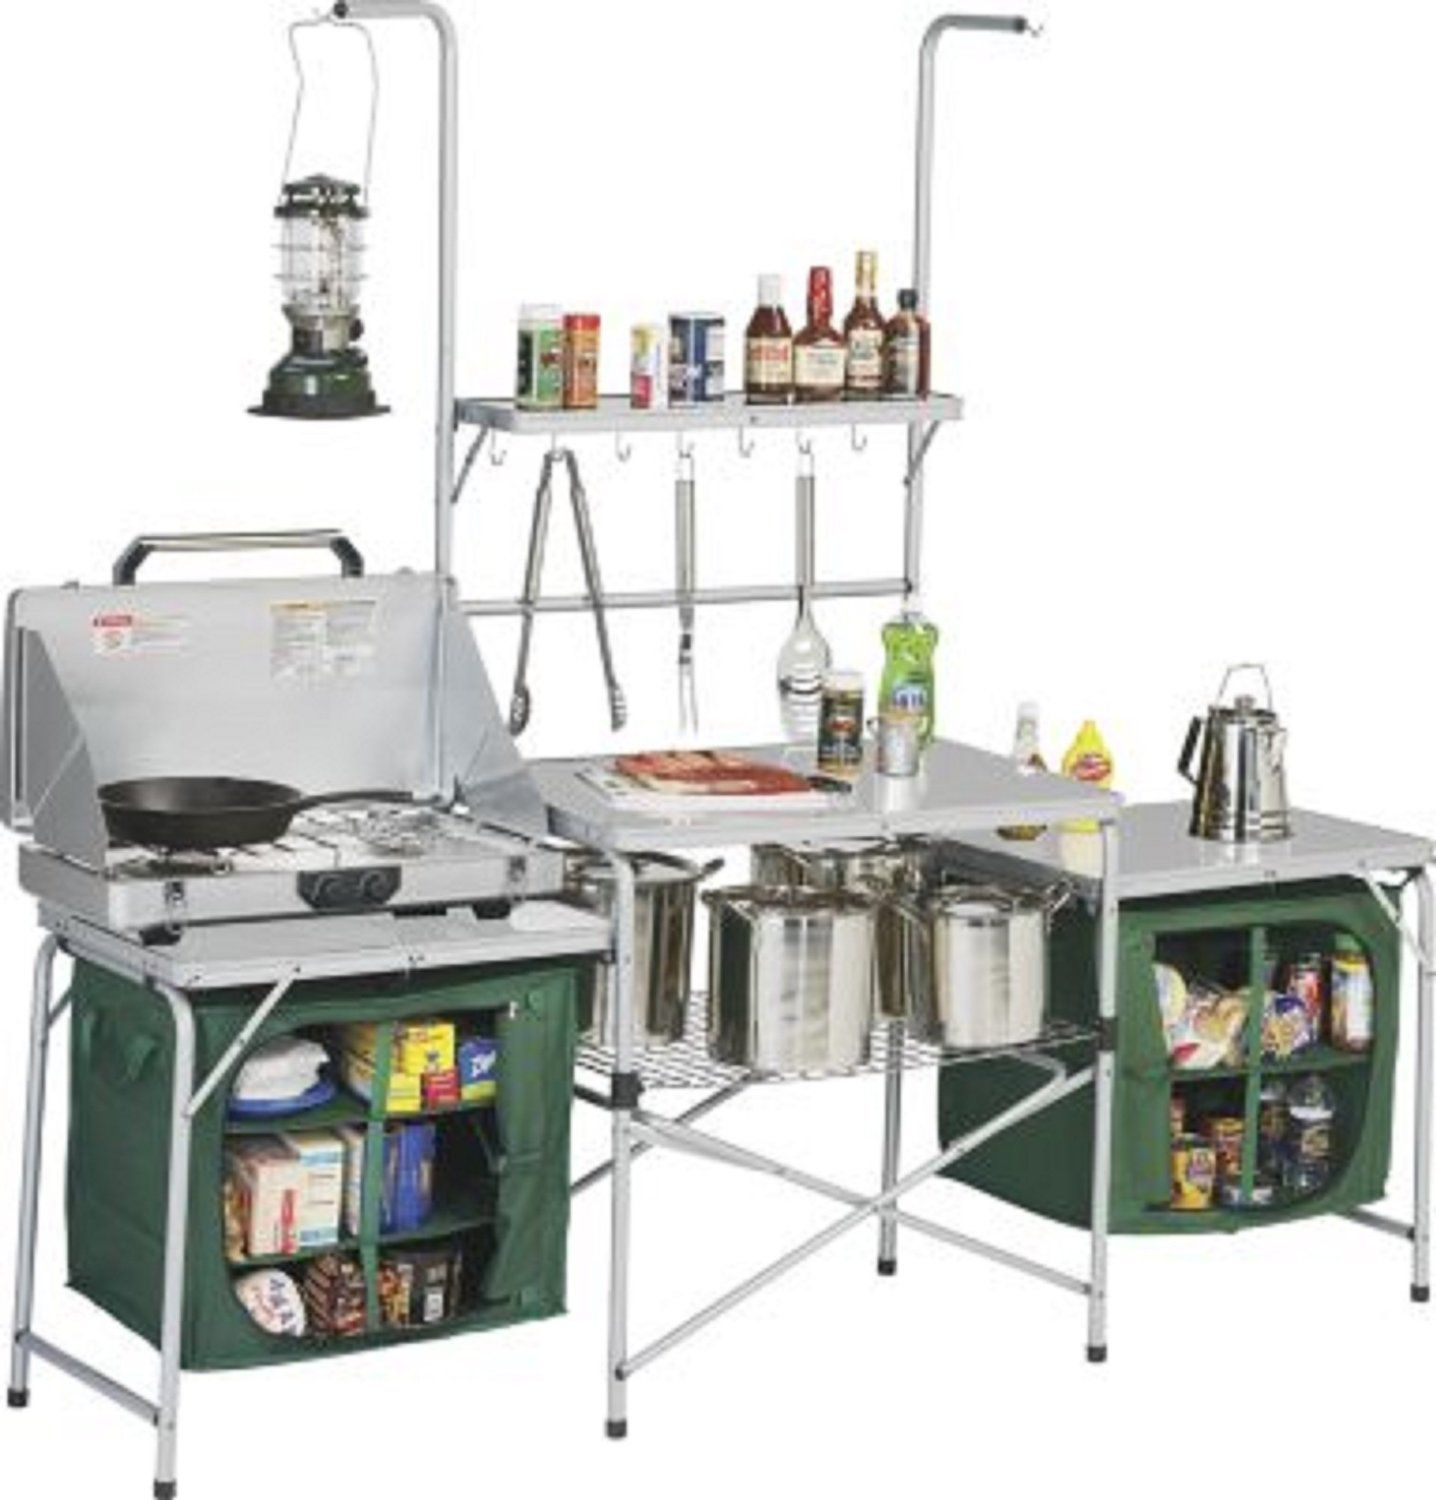 Camping Kitchen Tables Camping kitchen tables kitchen pantry storage ideas check more at camping kitchen tables kitchen pantry storage ideas check more at httpwww workwithnaturefo